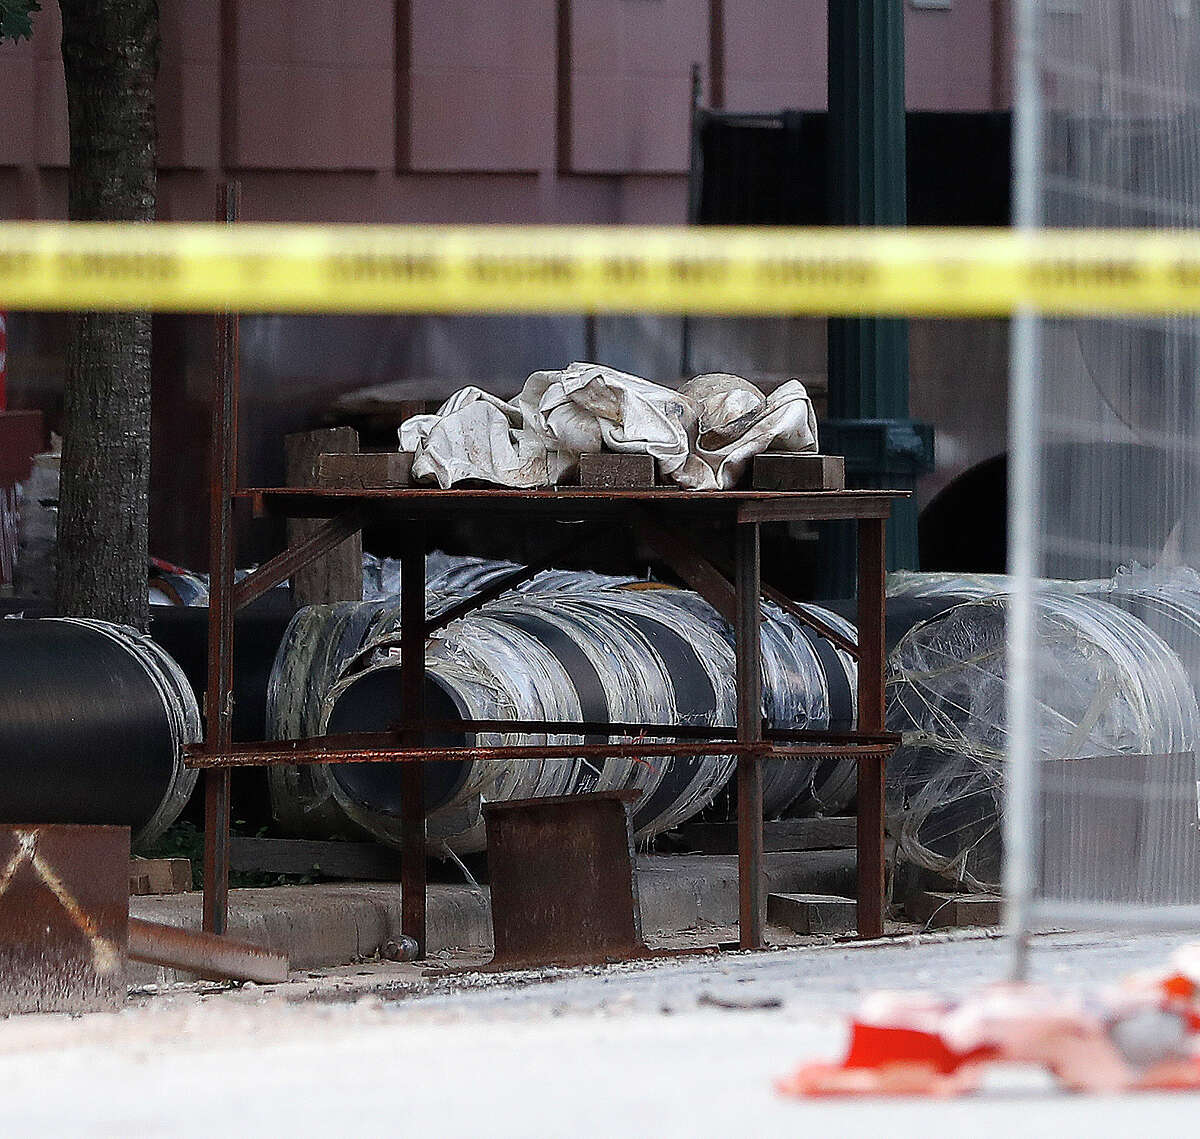 Houston Firefighters and investigators on the scene at Preston and Caroline, after construction workers located, what they believe to be a cannonball or other potential explosive device, which was located on the table covered in a white material, Thursday, June 17, 2021.